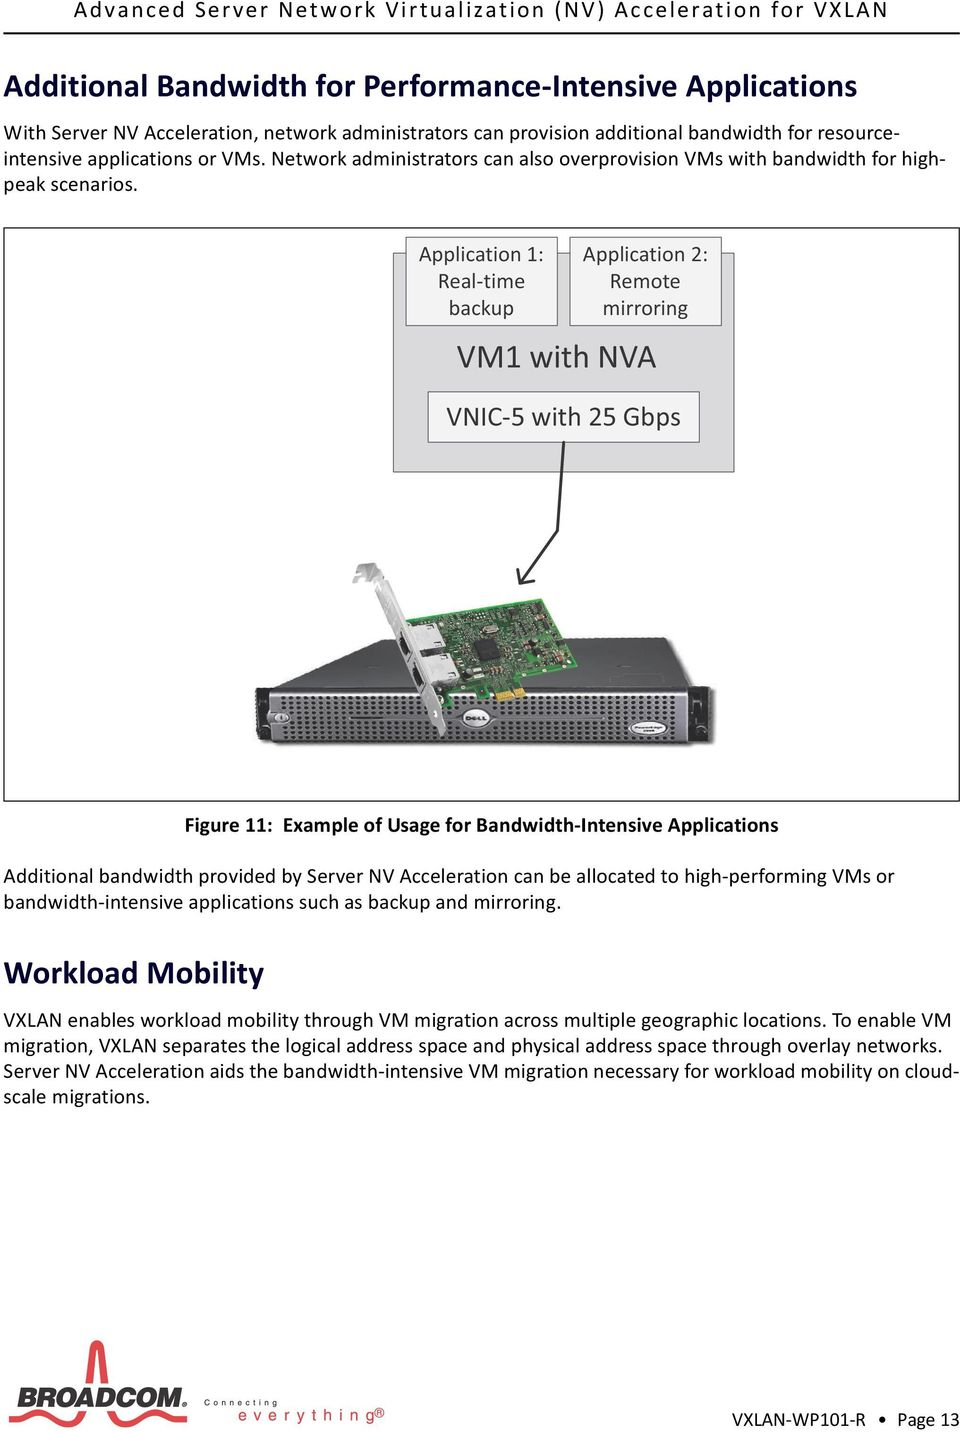 Figure 11: Example of Usage for Bandwidth-Intensive Applications Additional bandwidth provided by Server NV Acceleration can be allocated to high-performing VMs or bandwidth-intensive applications